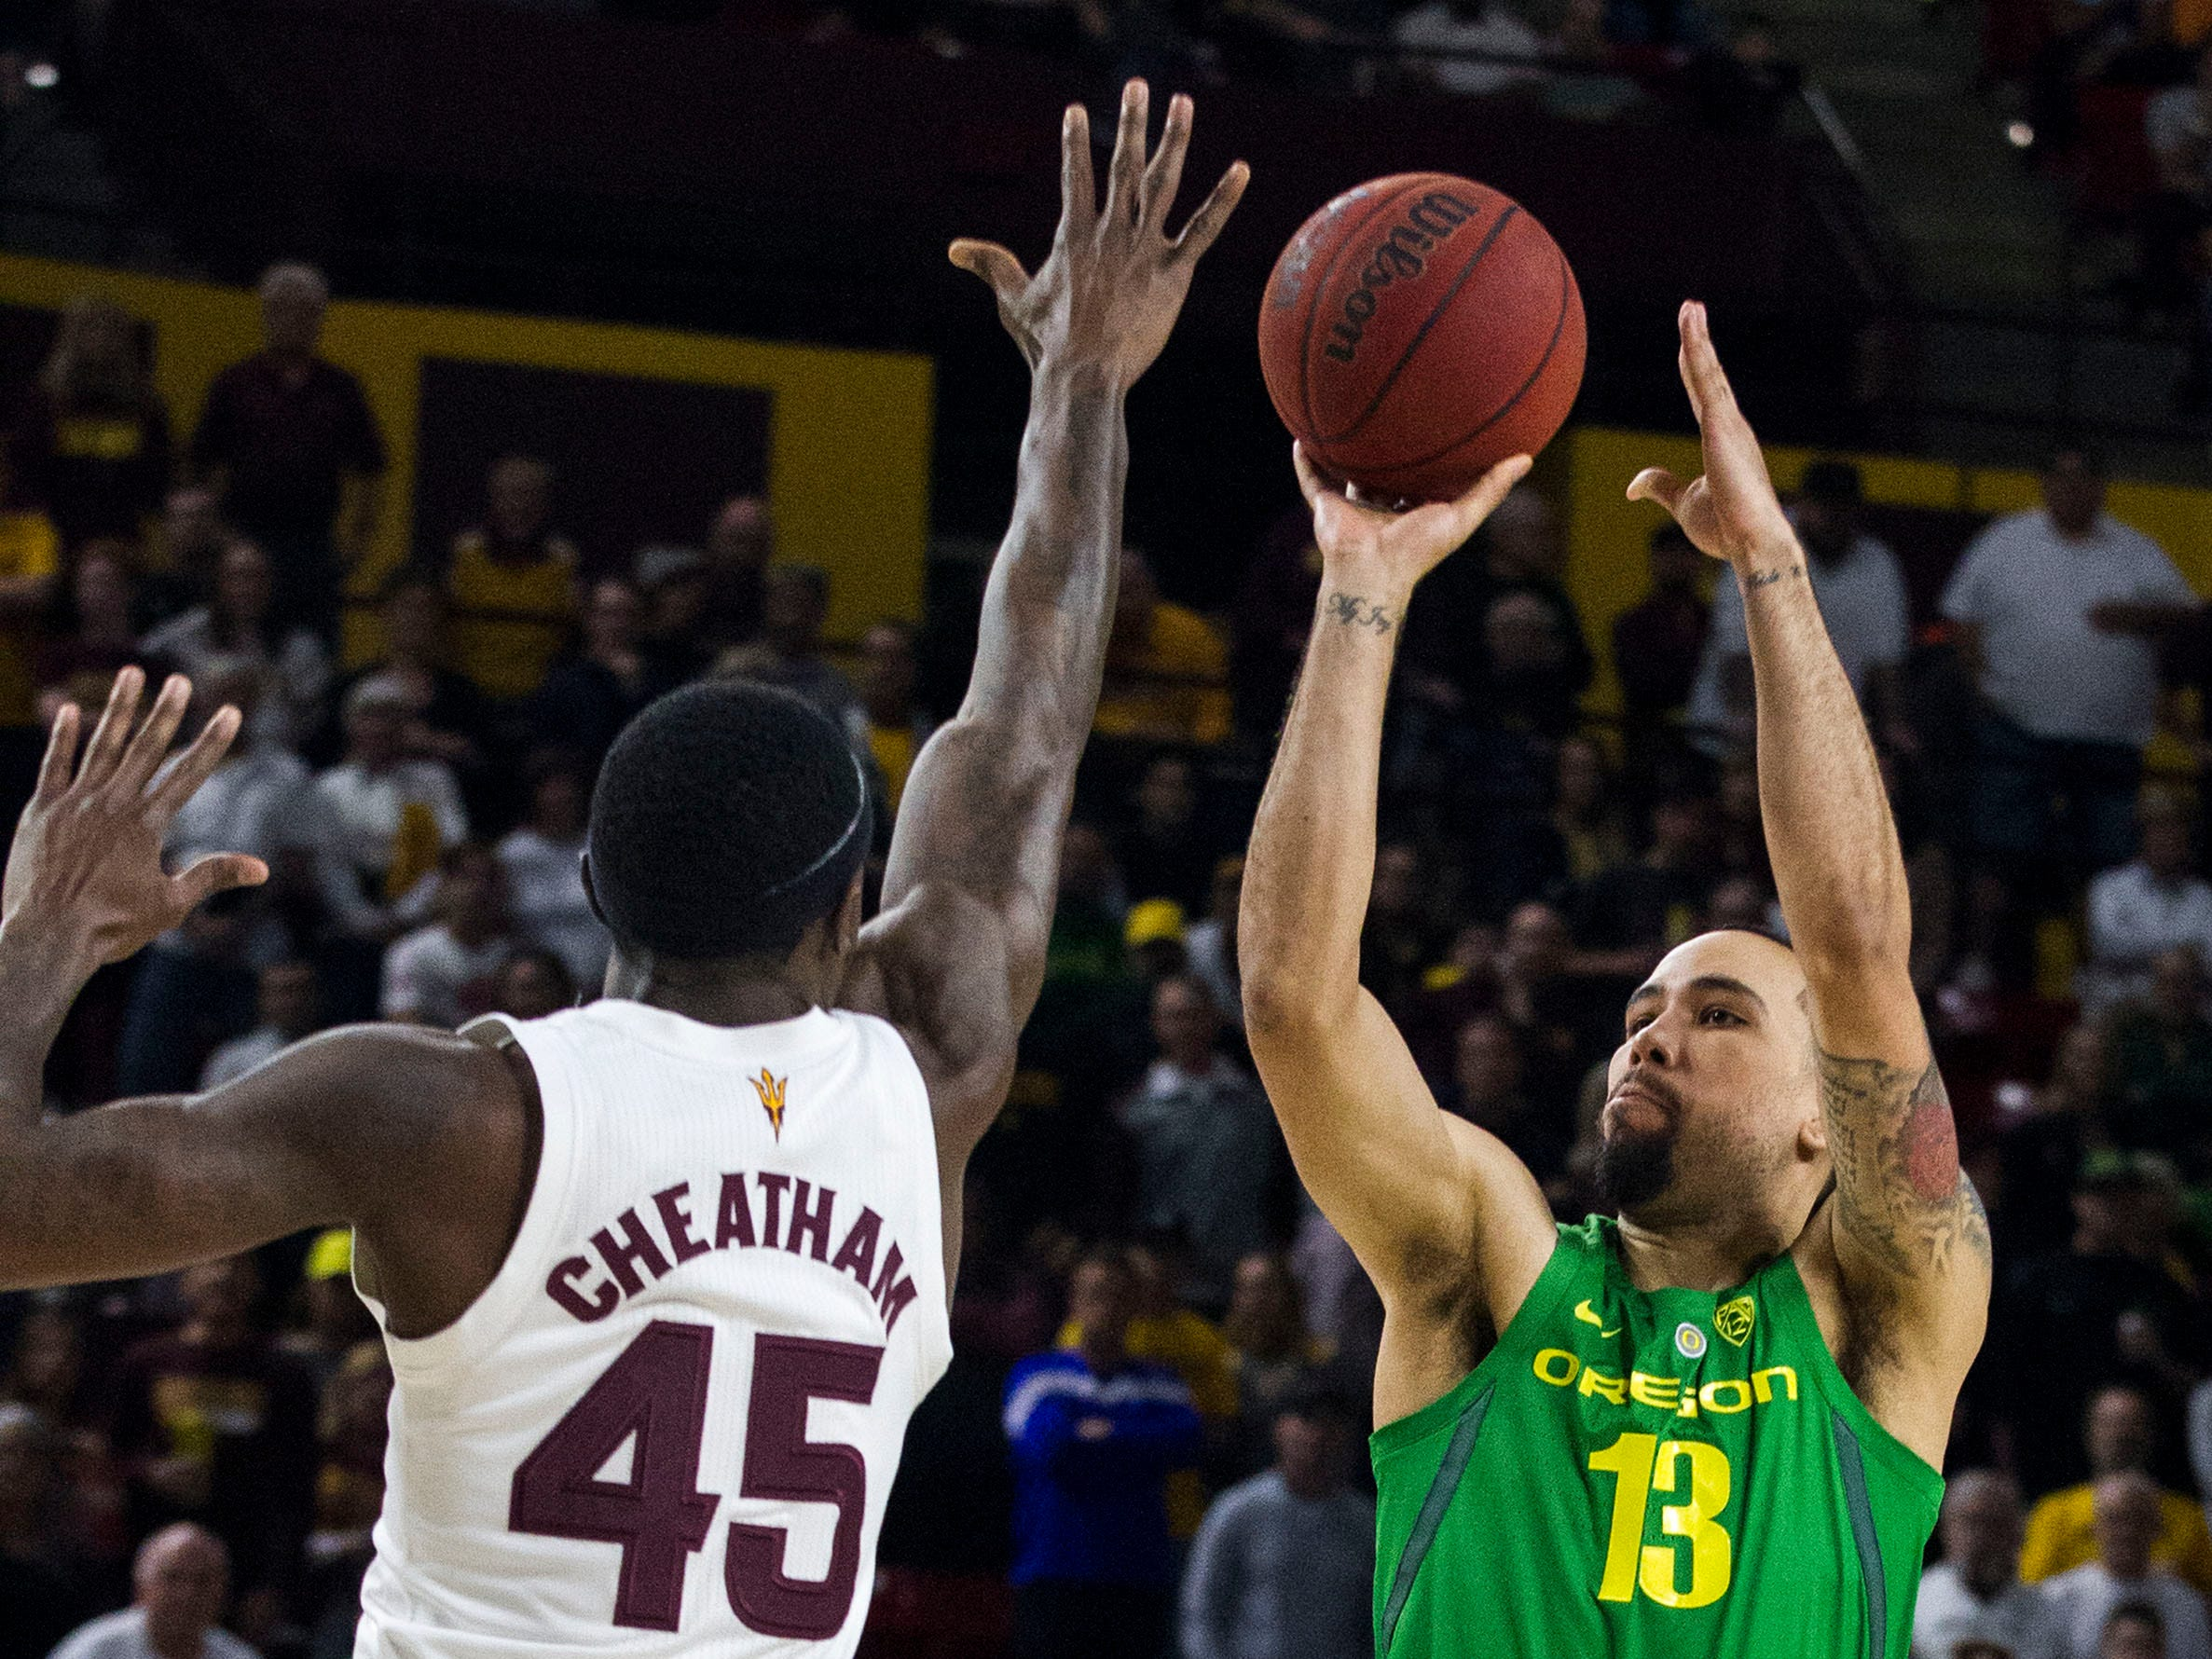 Oregon's Paul White (13) shoots over Arizona State's Zylan Cheatham (45) during the first half, Saturday, Jan. 19, 2019, in Tempe, Ariz. (AP Photo/Darryl Webb)